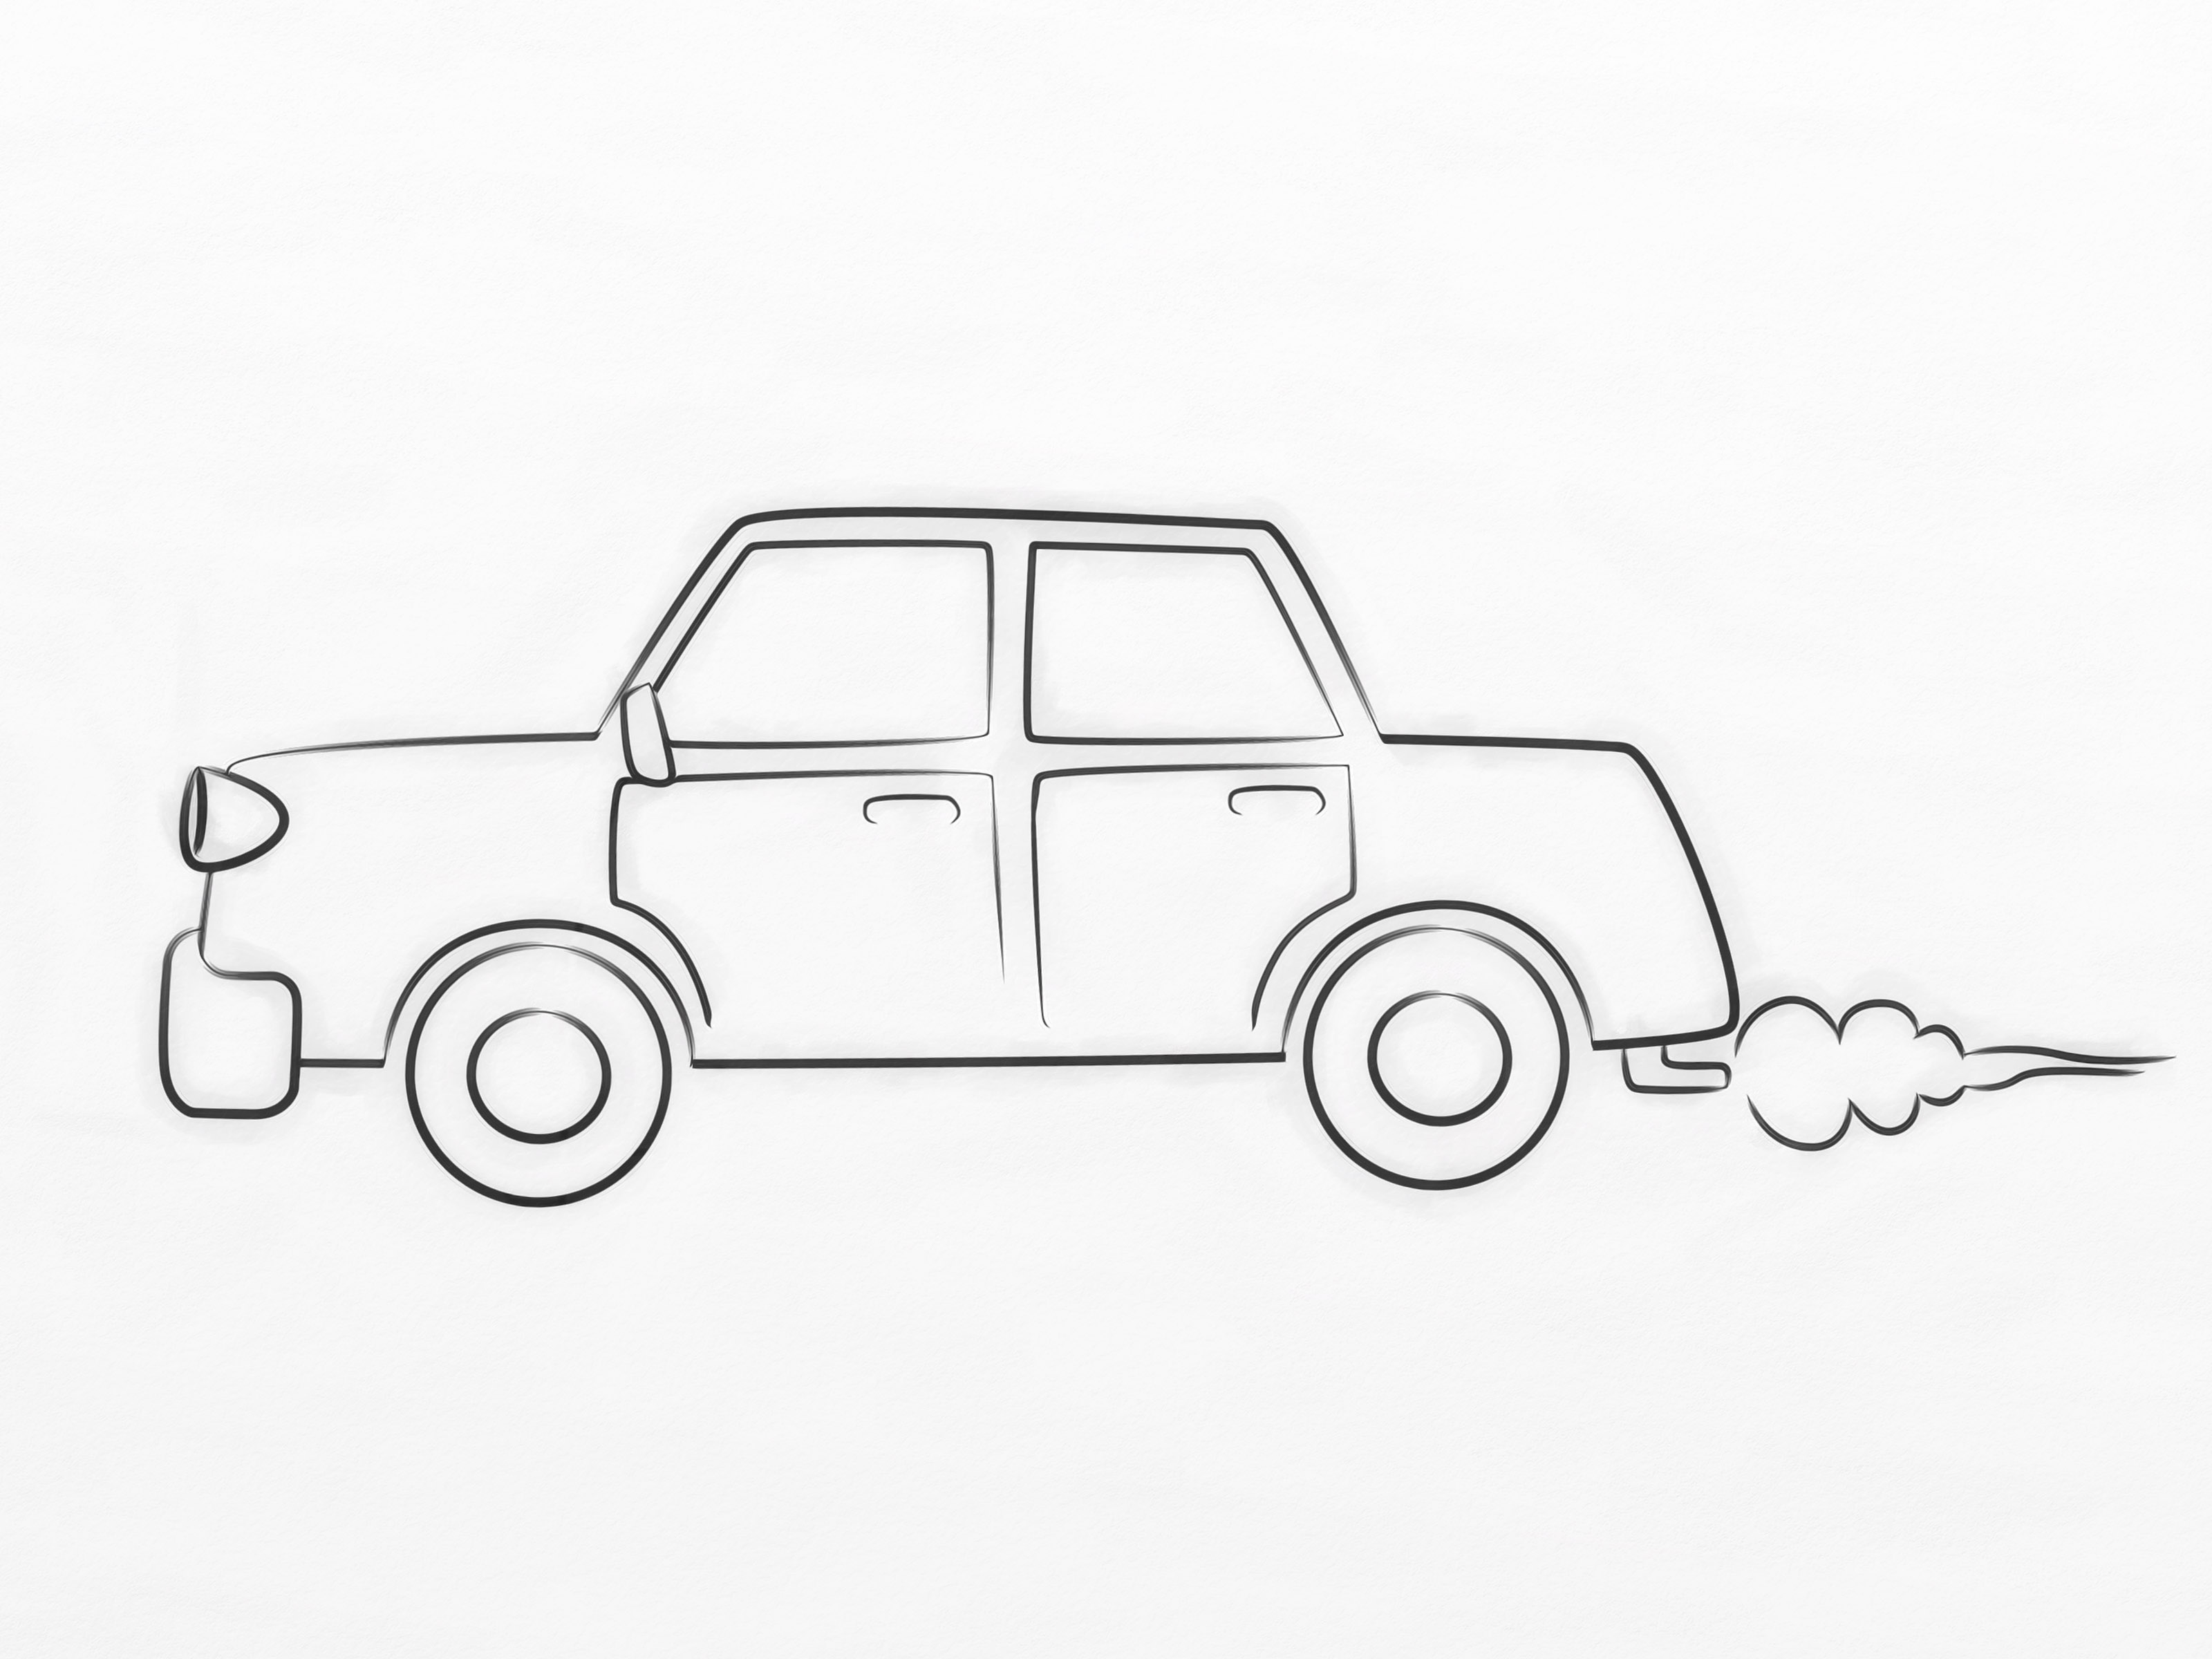 Small Car Drawing At Getdrawings